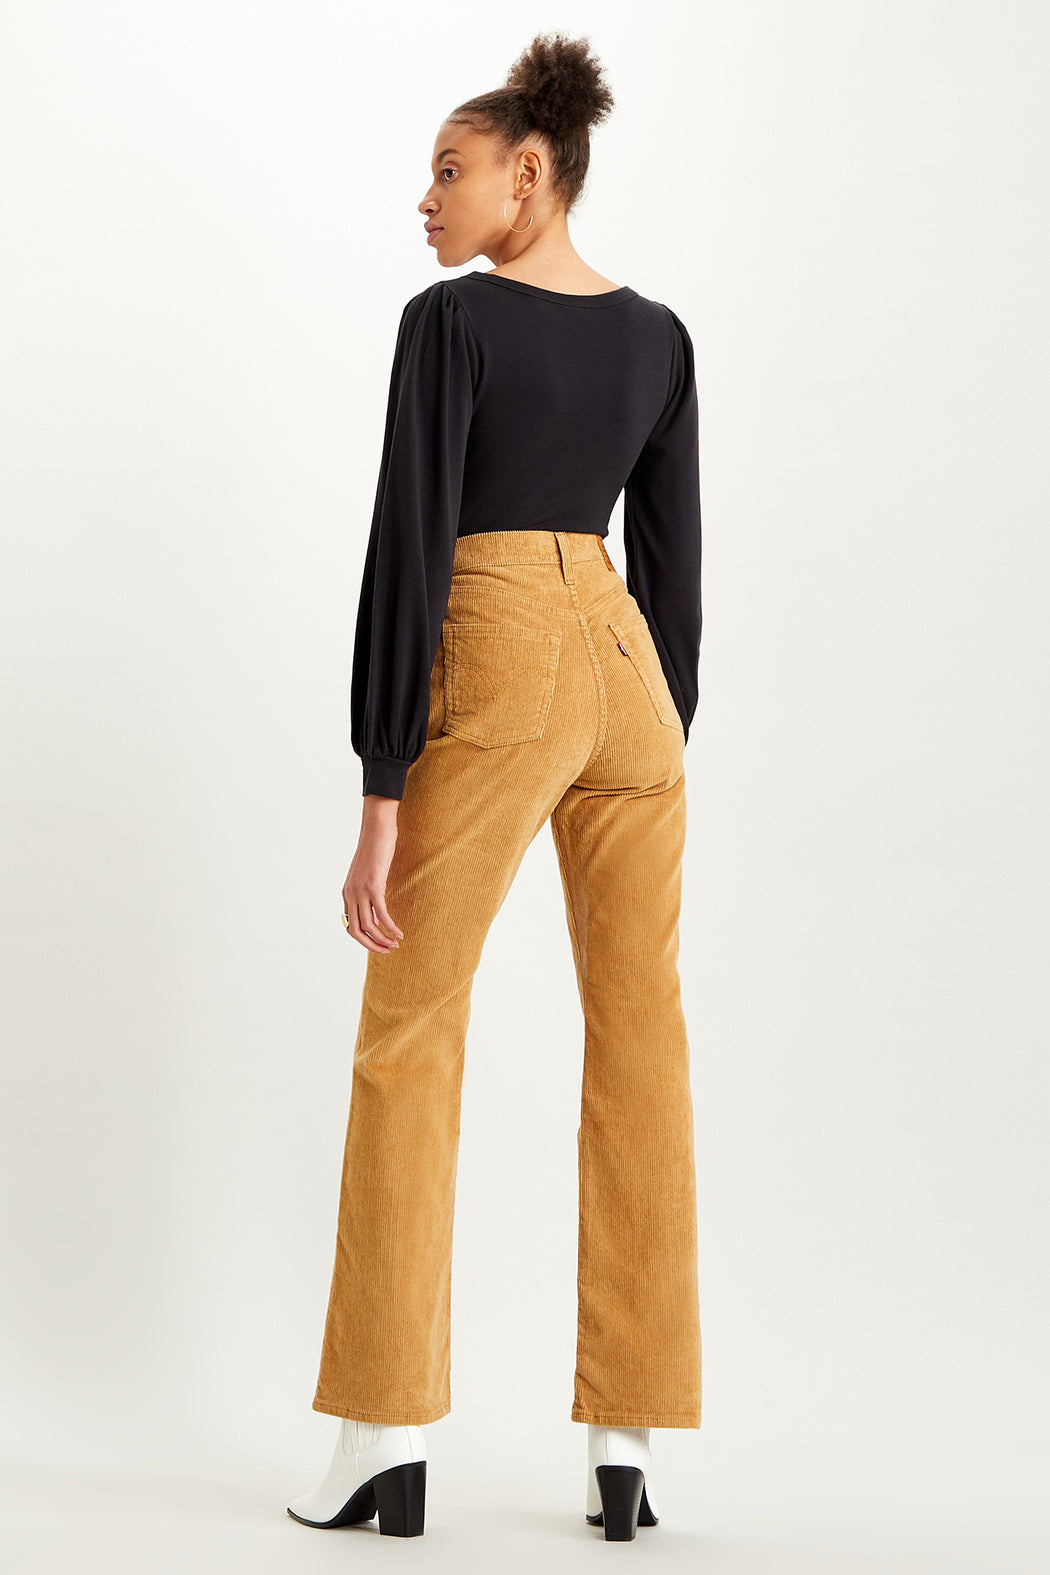 Levi's-Ribcage-Bootcut-Corduroy-Pant-Iced-Coffee